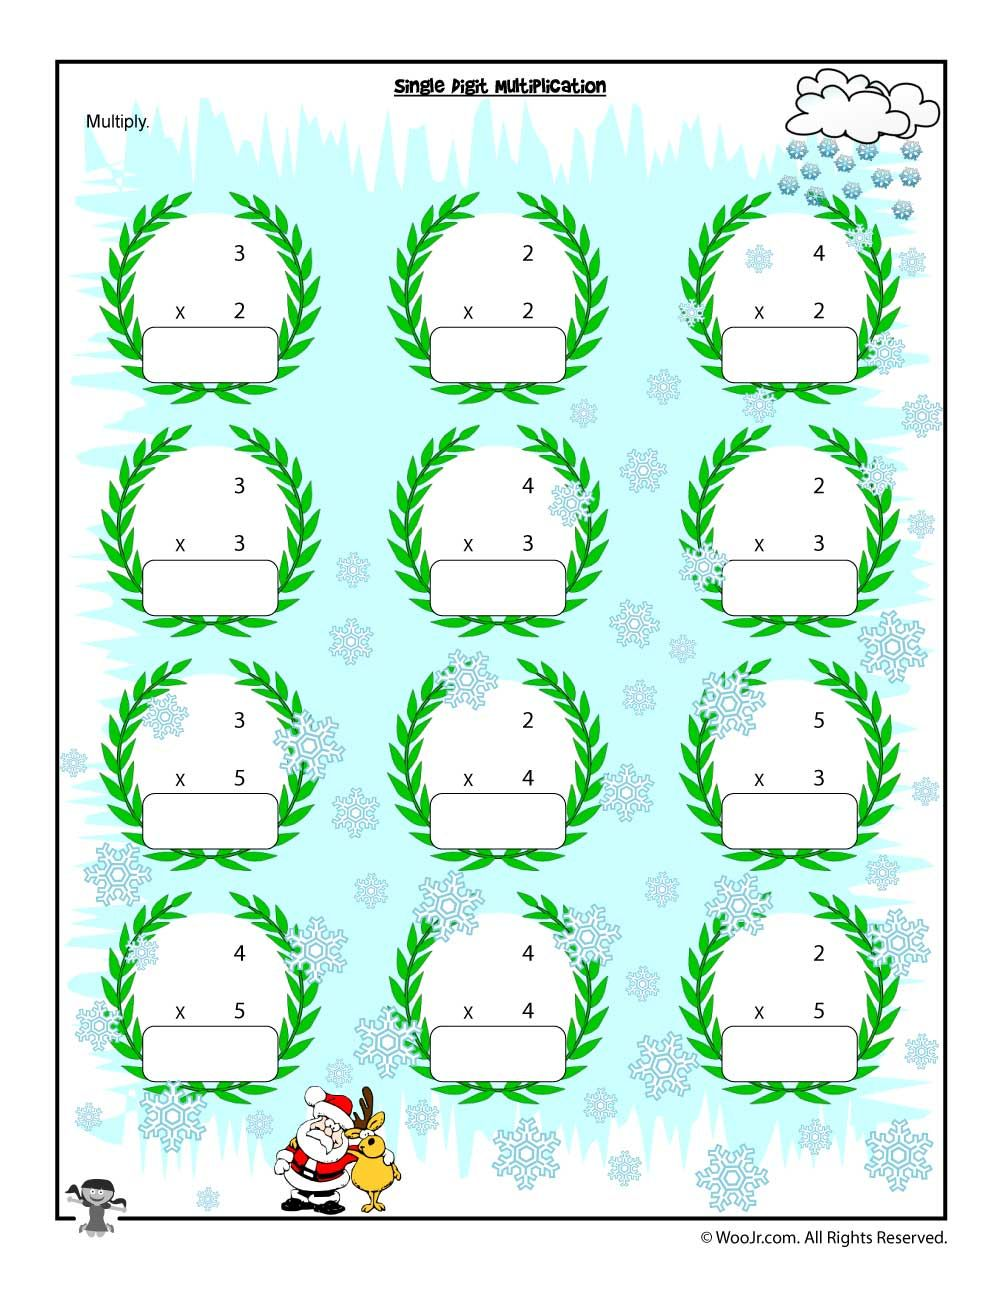 Single Digit Christmas Multiplication Worksheet | Math | Pinterest ...